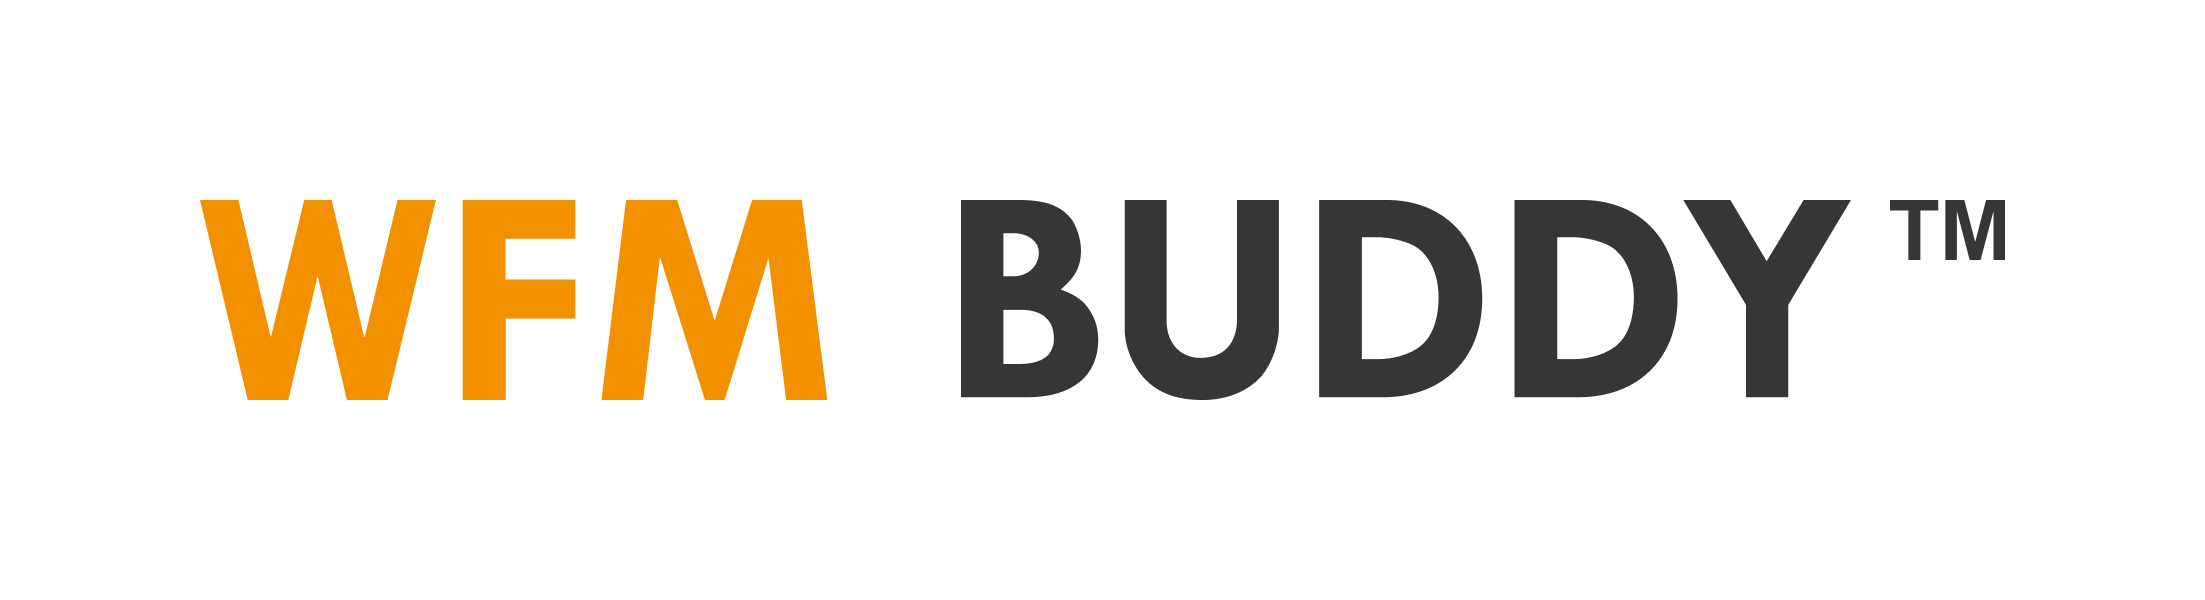 WFM Buddy - Delighting your Workforce